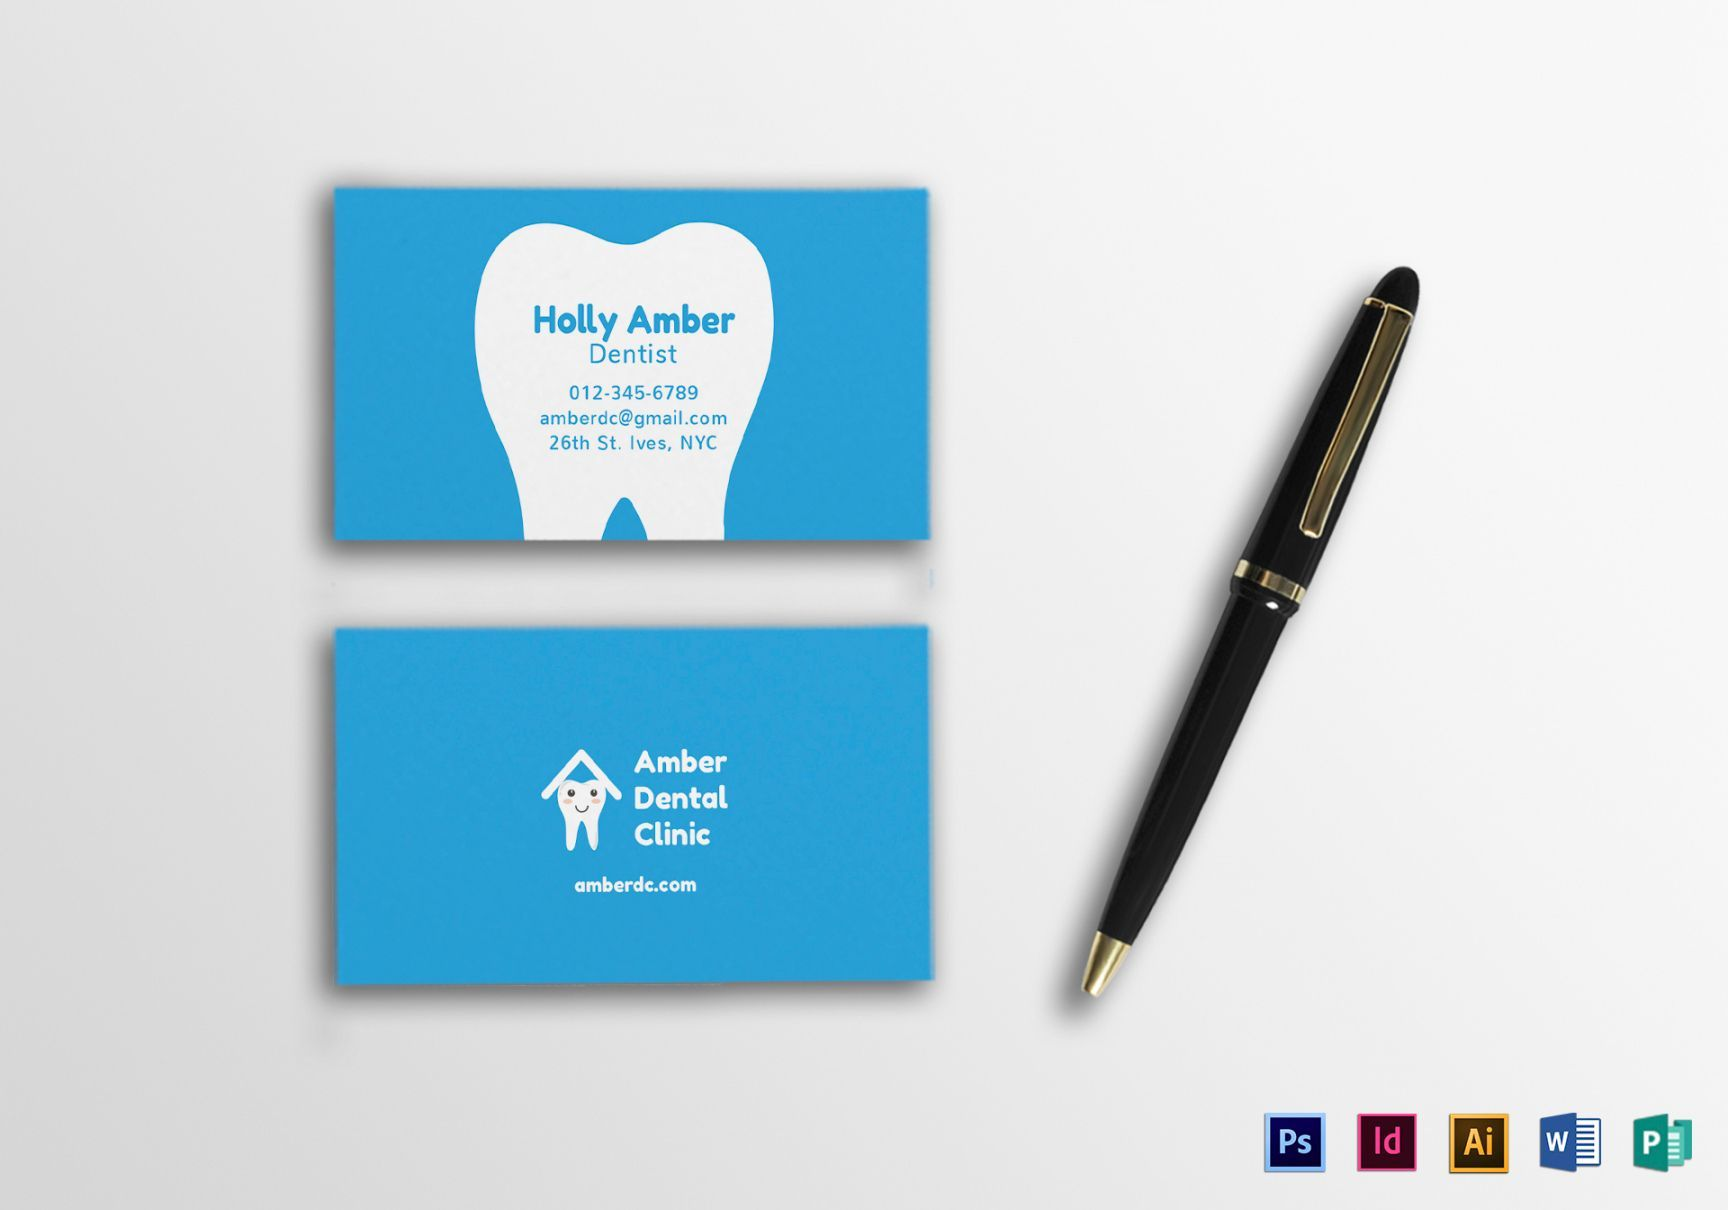 Get Our Image Of Dentist Business Card Templates In 2020 Dental Business Cards Business Card Template Design Business Card Template